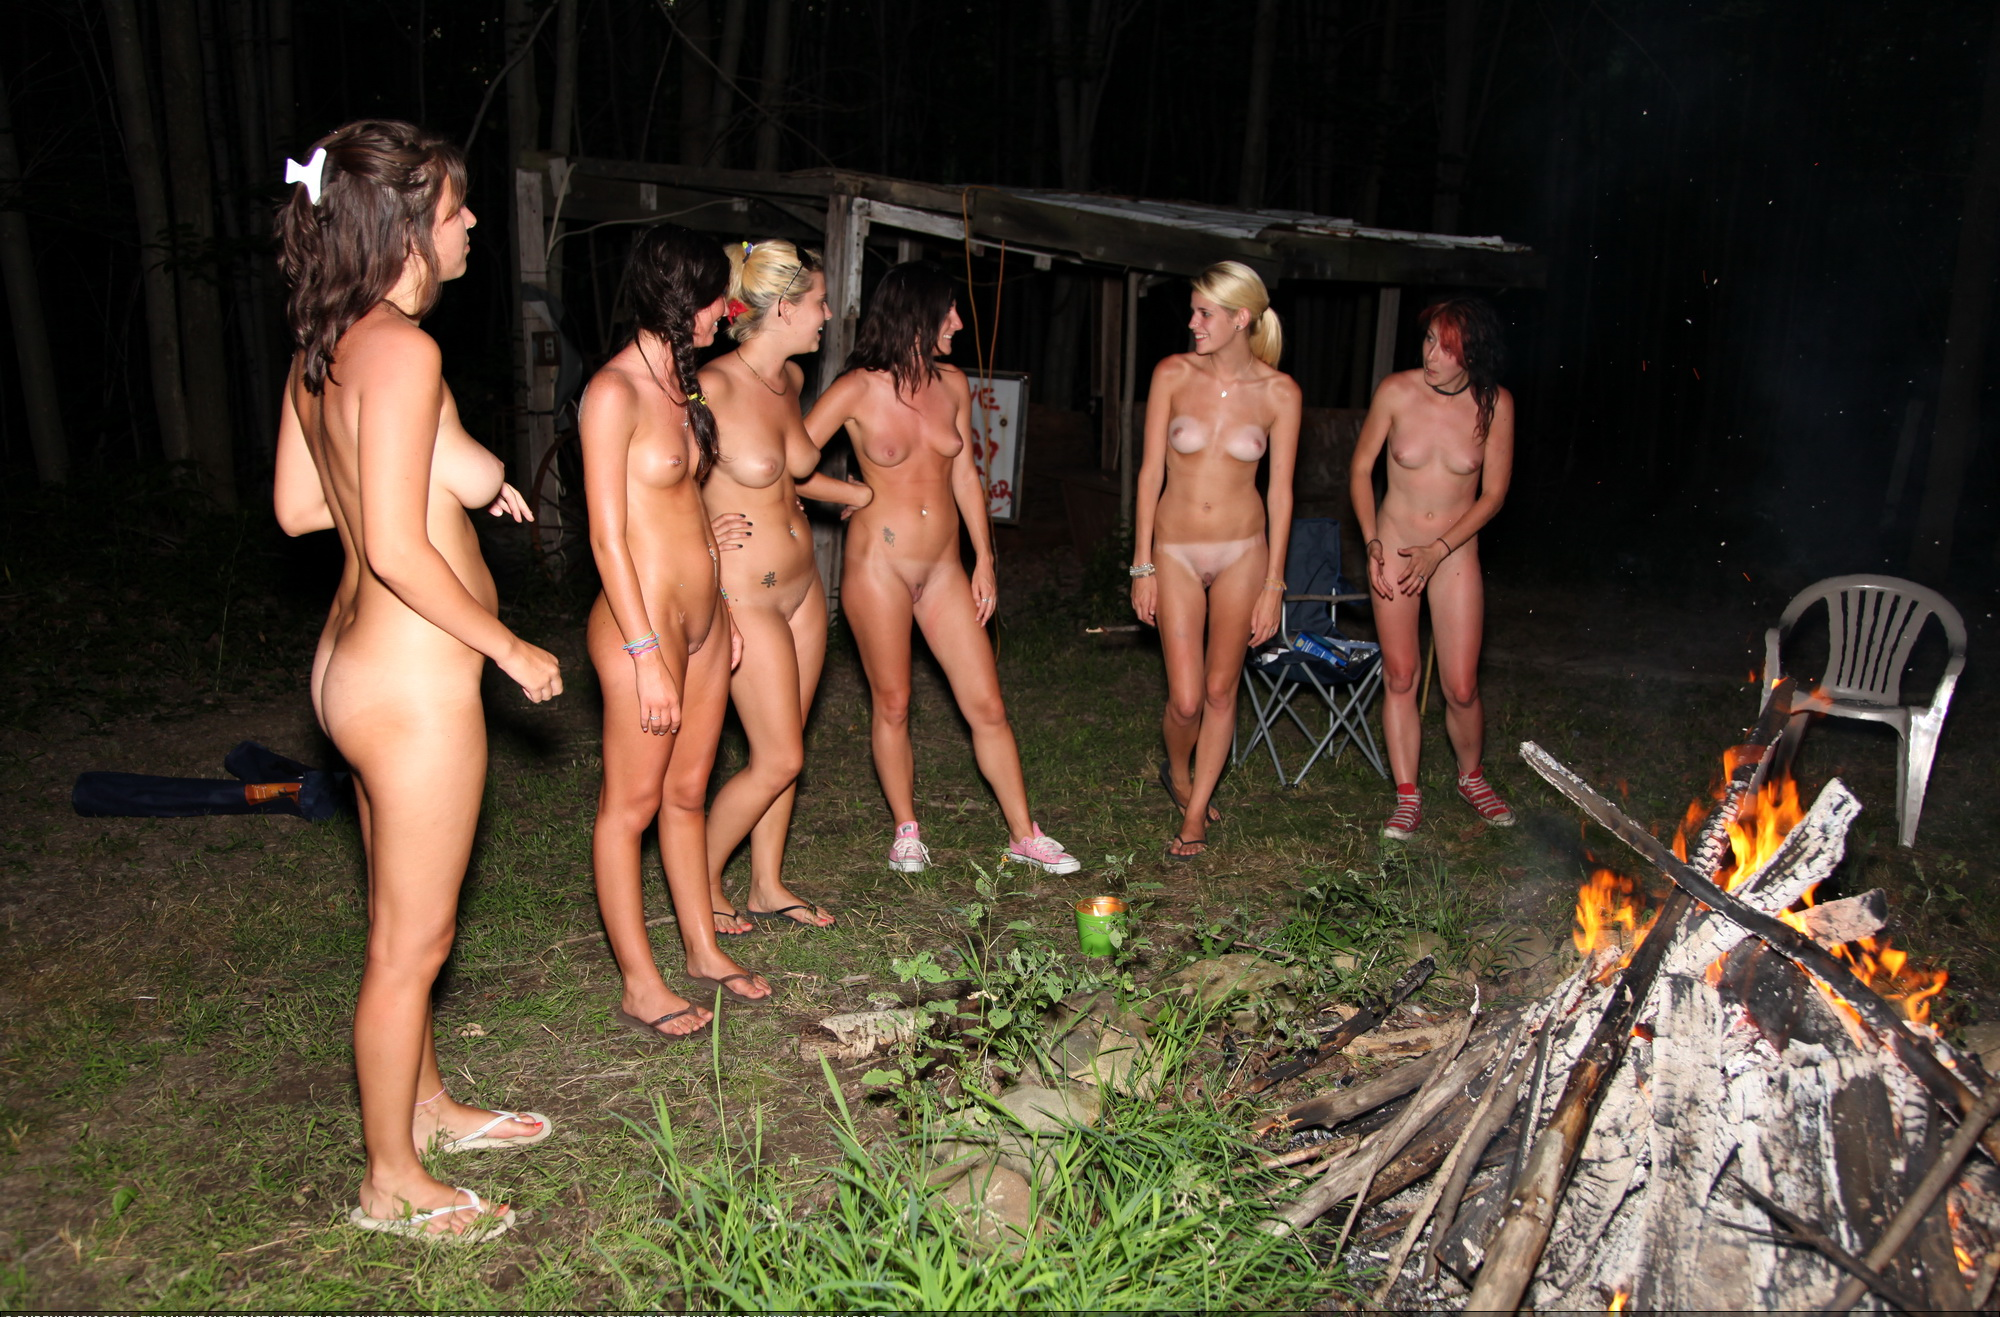 Nudist colony group pics photo